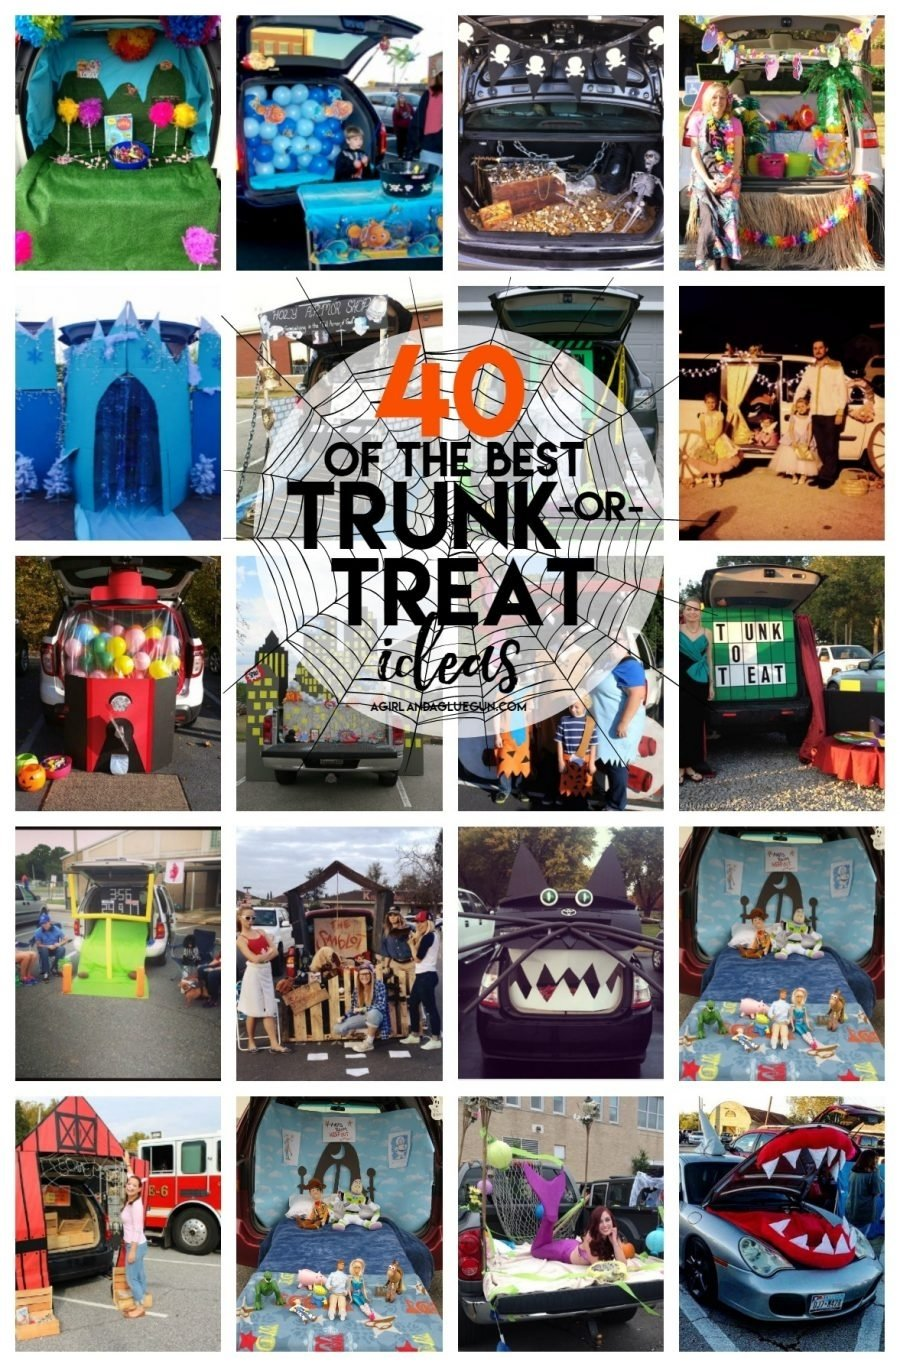 10 Attractive Halloween Trick Or Treat Ideas 40 of the best trunk or treat ideas a girl and a glue gun 2021